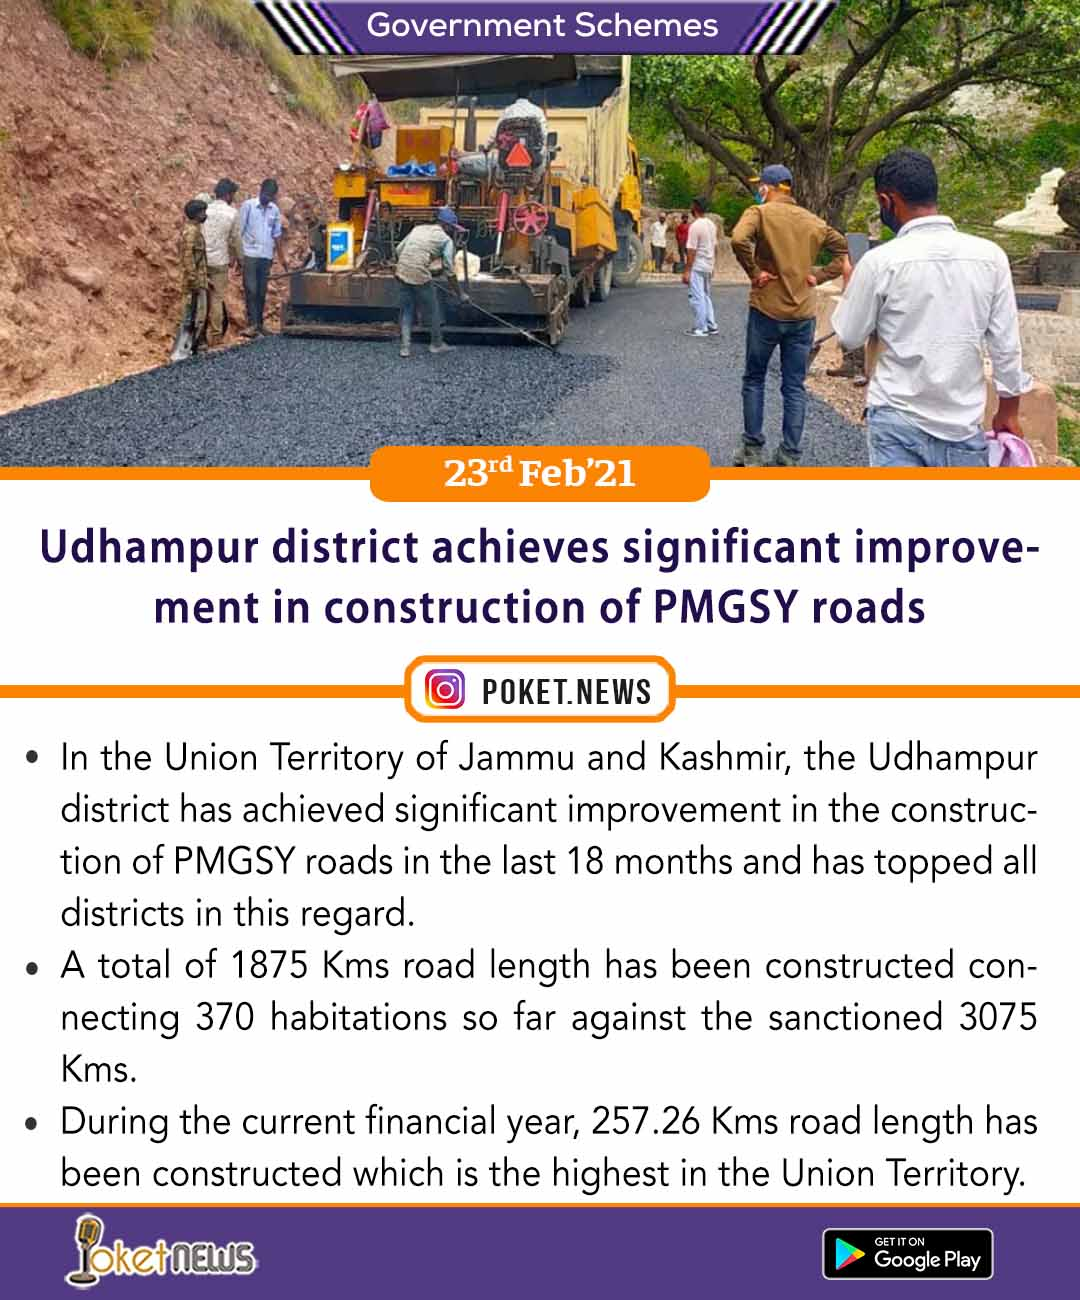 Udhampur district achieves significant improvement in construction of PMGSY roads